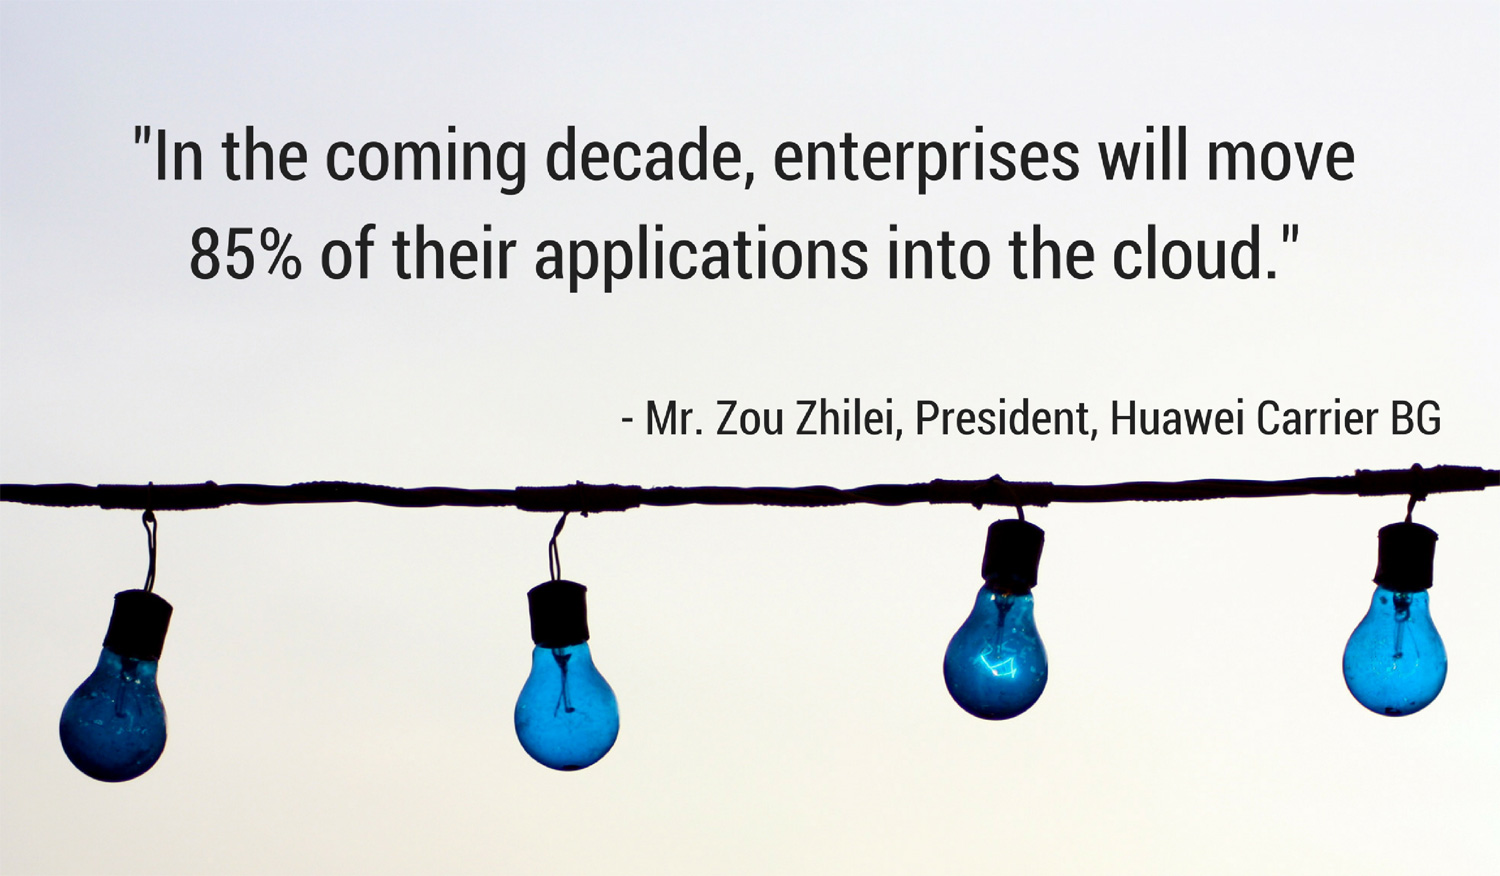 huawei-cloud-mobile-network-strategy-9